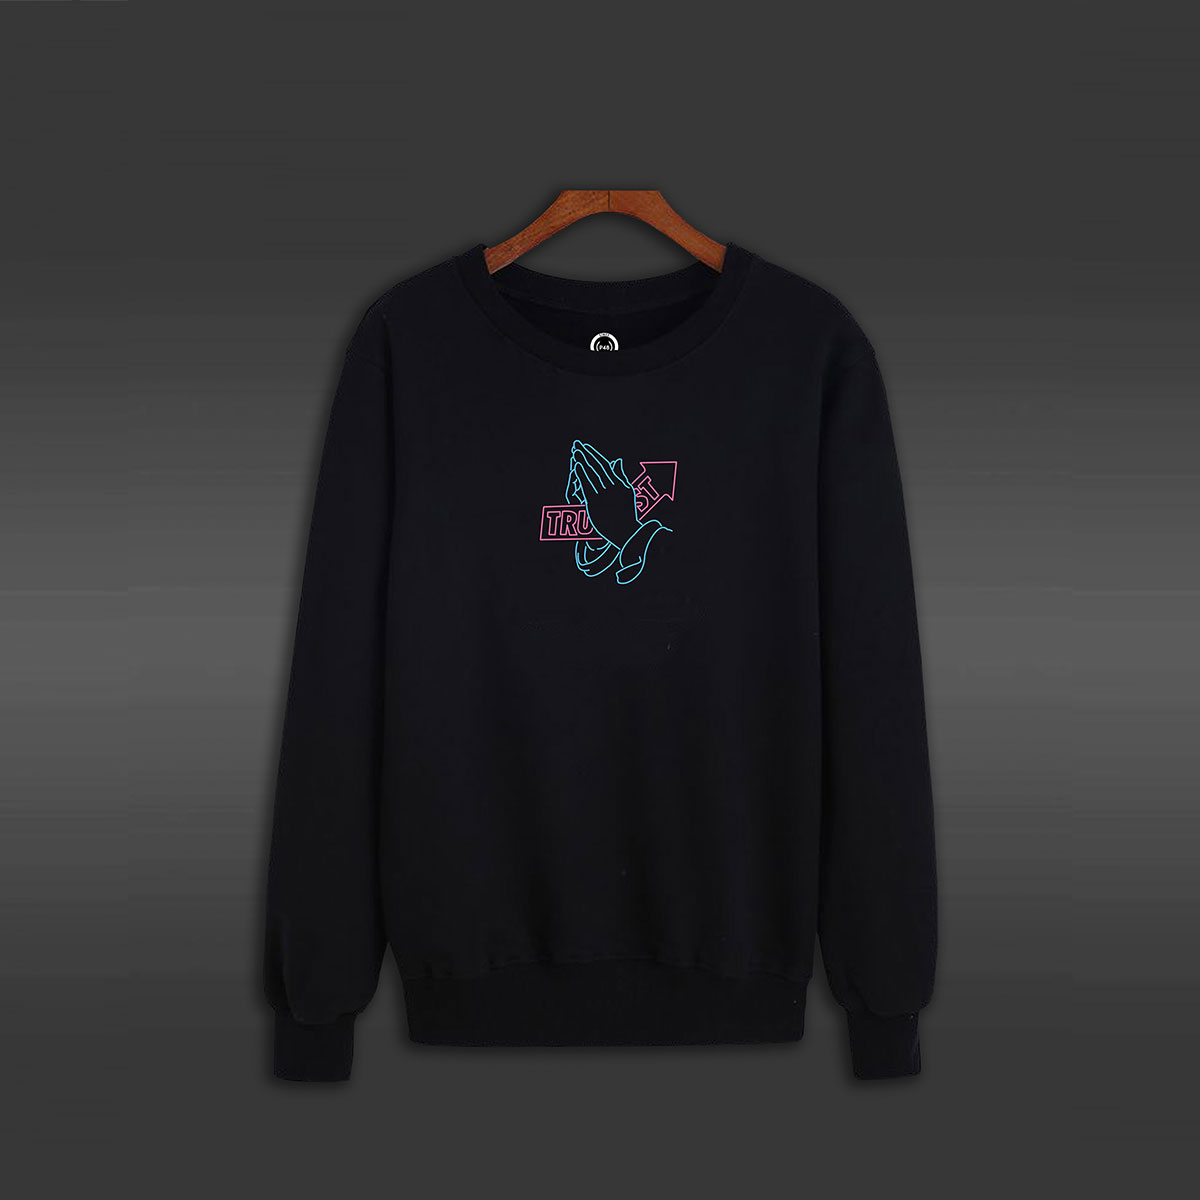 Trust Pray Hand Crew Neck Sweater - Black